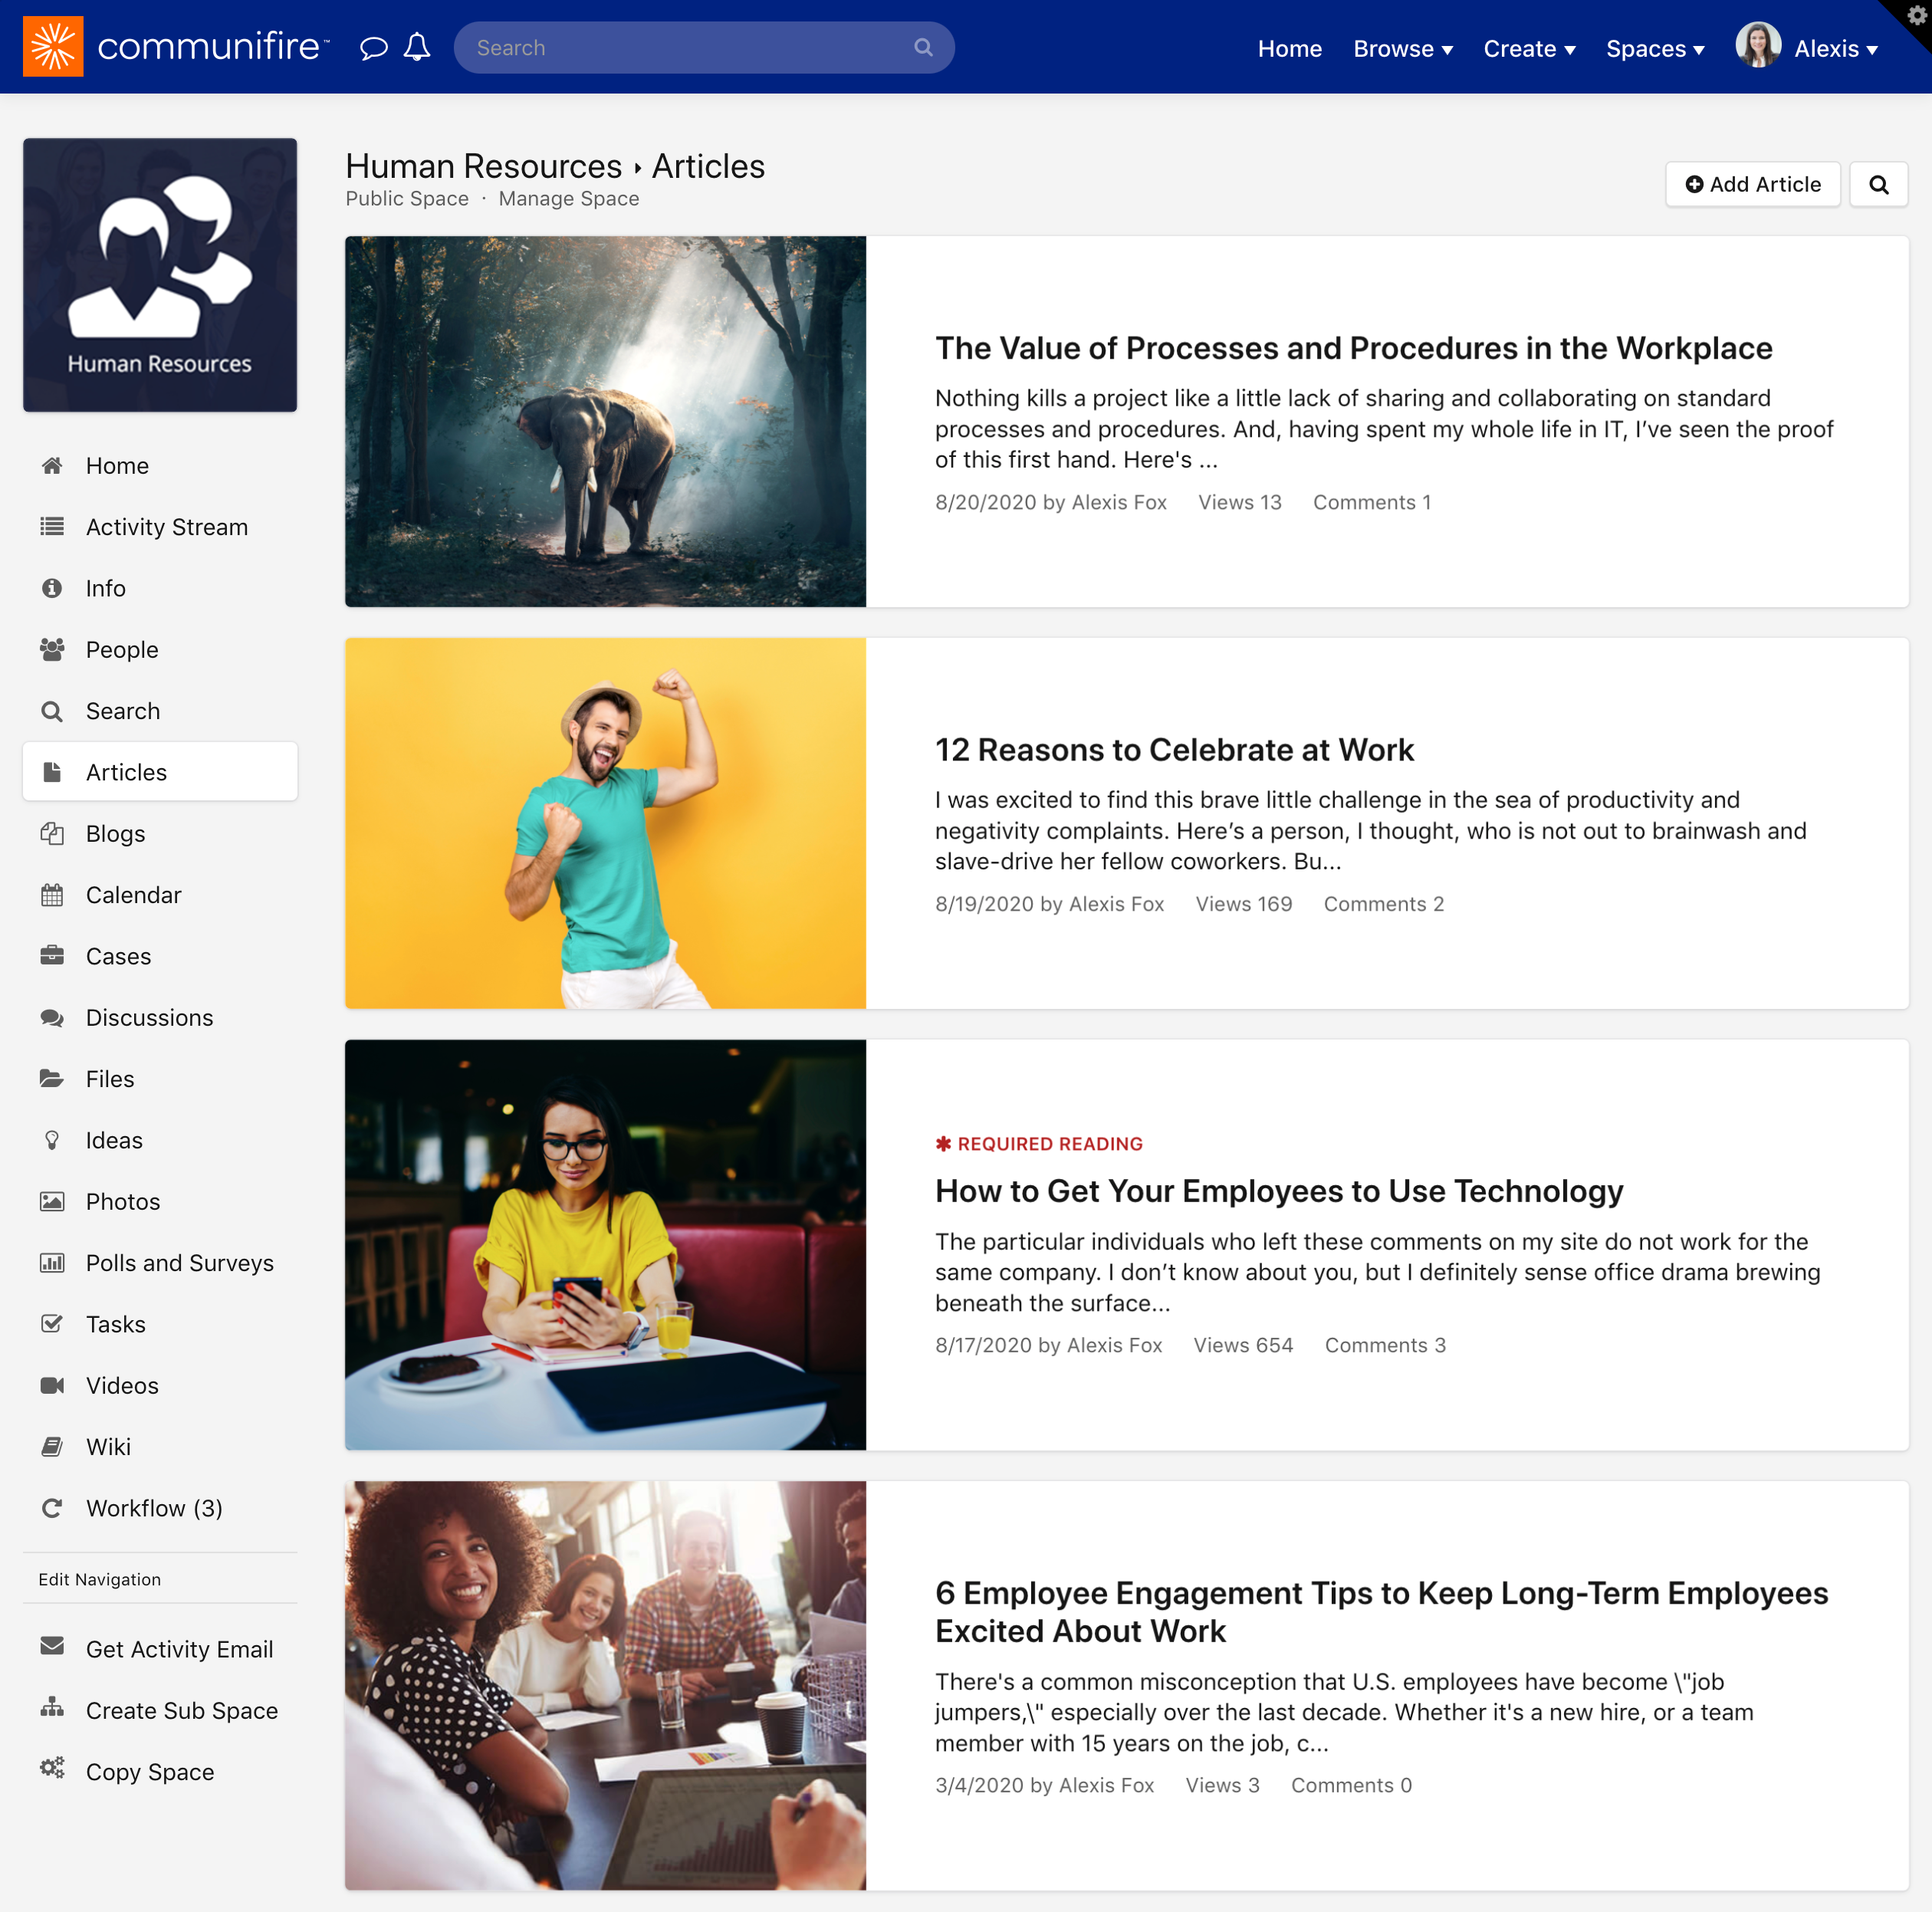 The articles homepage